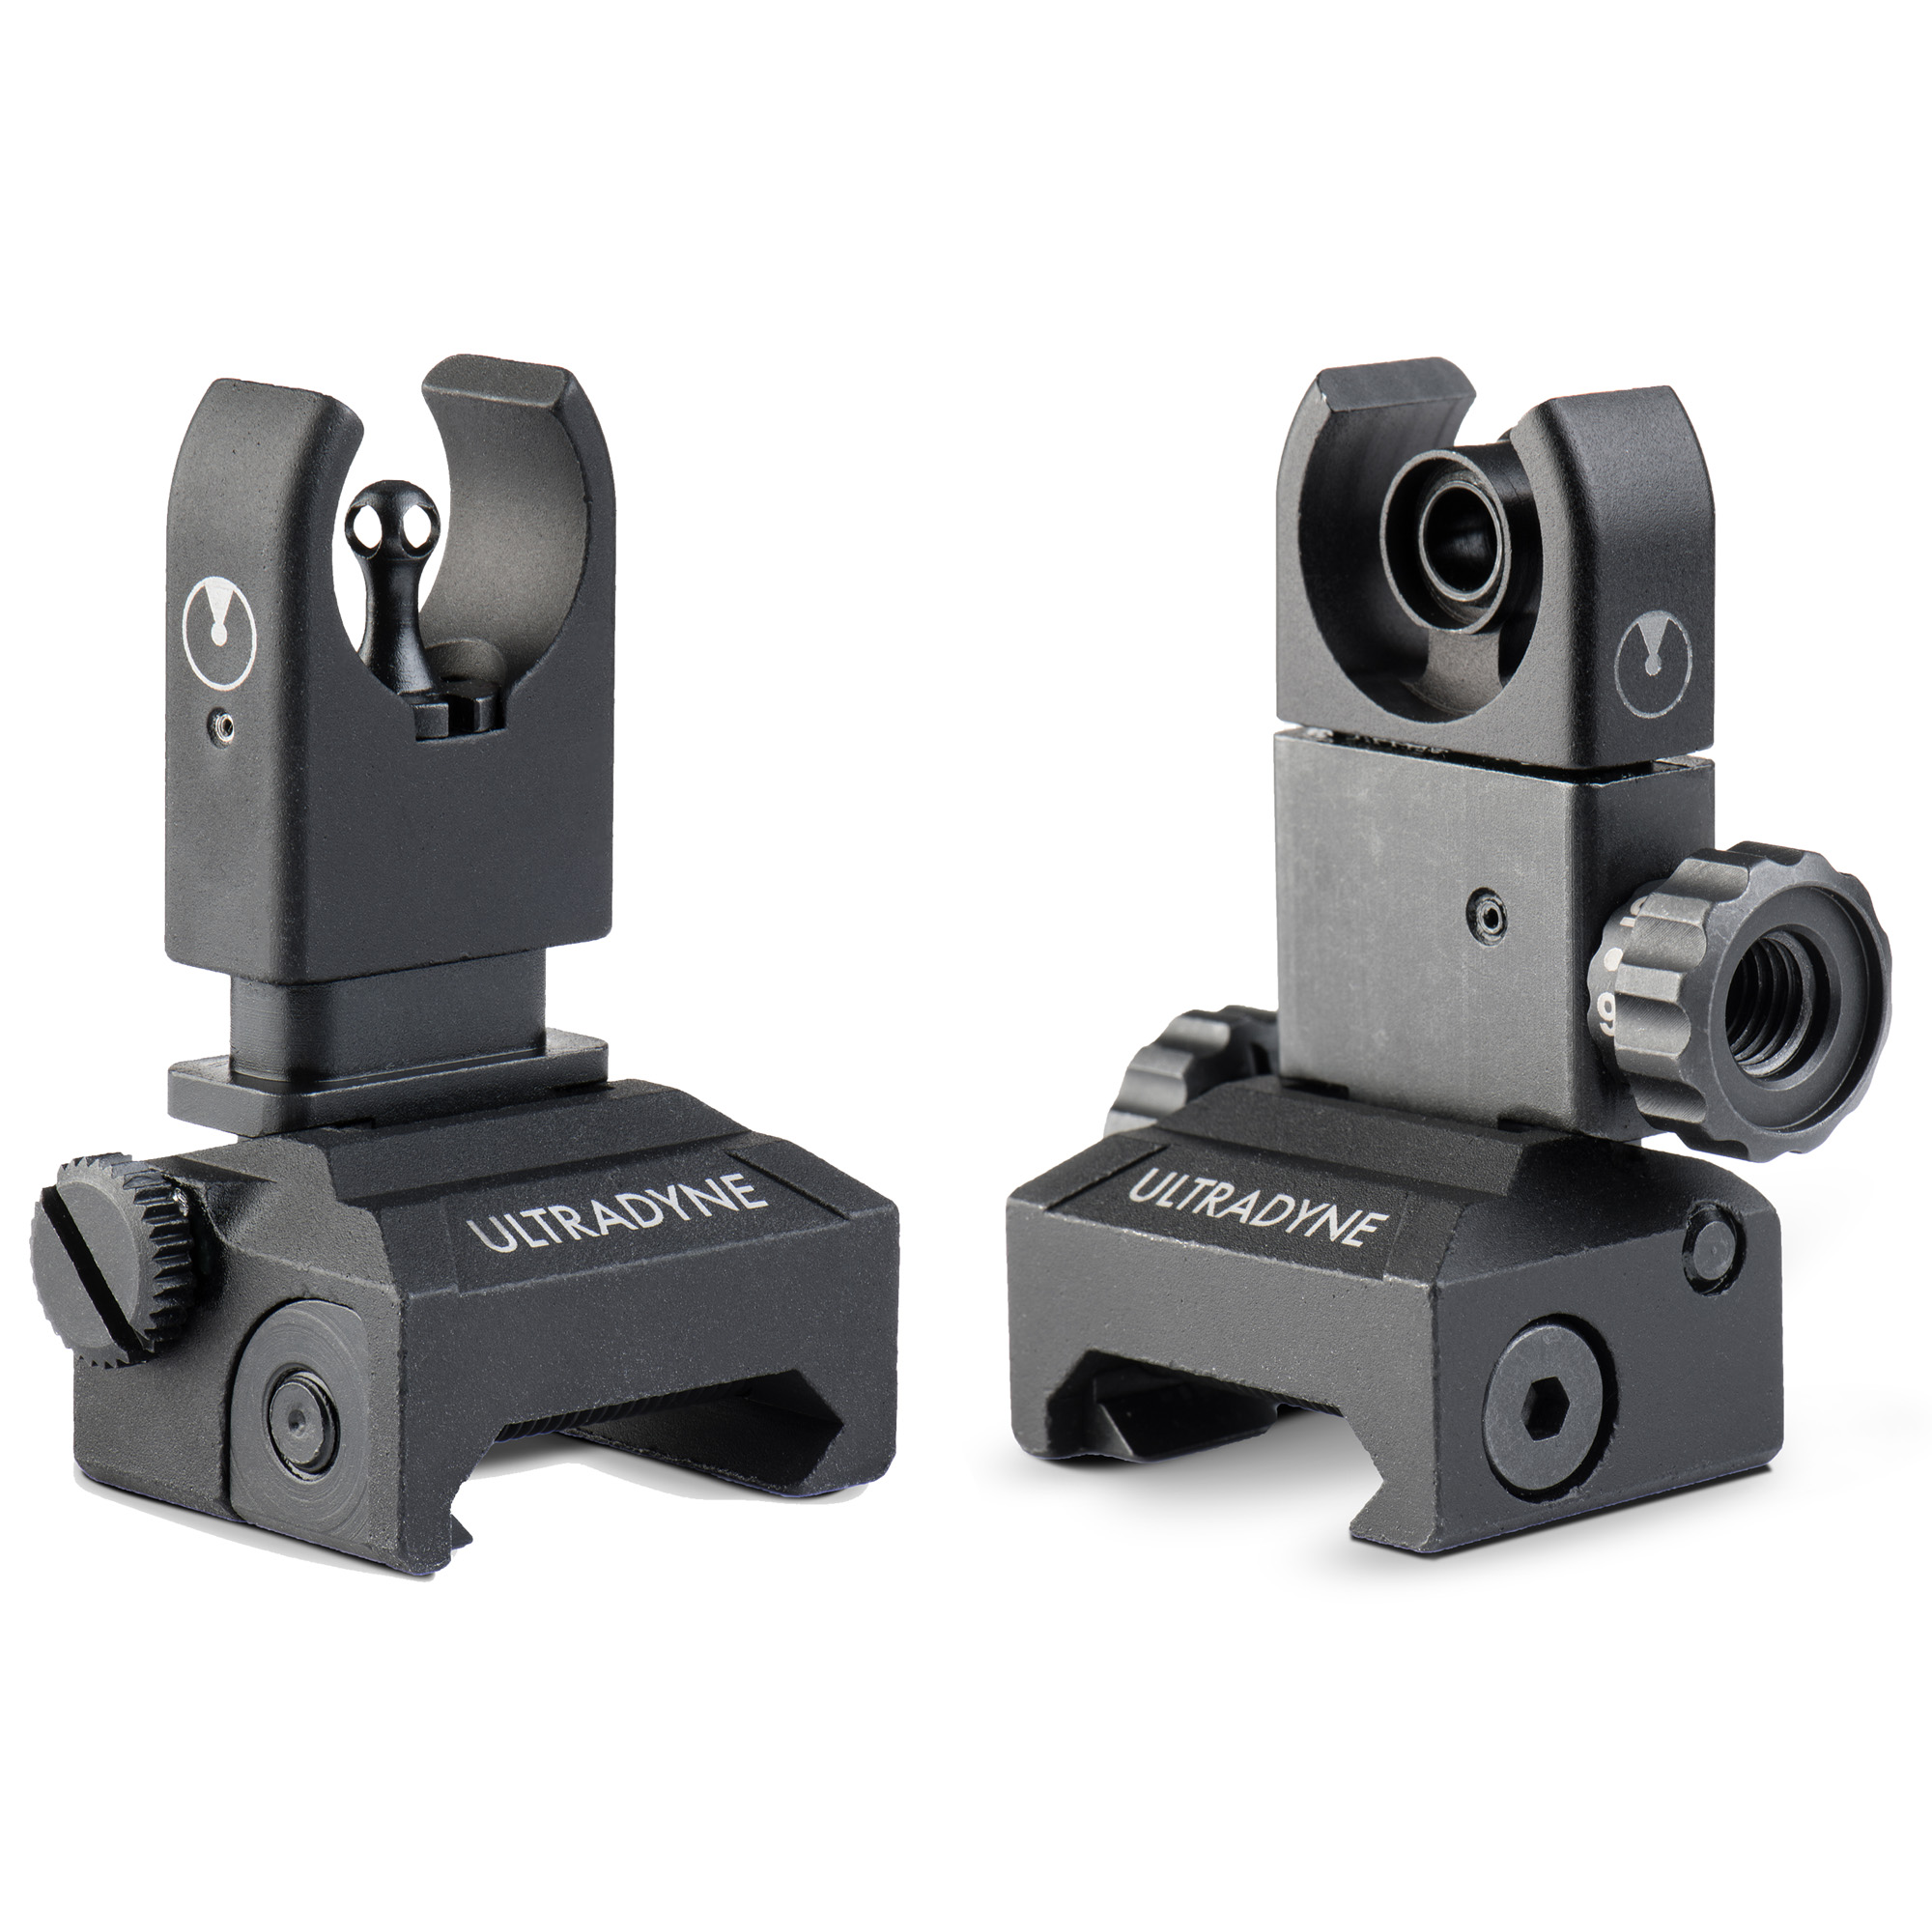 "The C4 Front/Rear Sight Combo is a dual aperture sighting system that is changing the way shooters think about iron sights. The C4 Rear Sight offers Rock-solid performance in a compact form with a ballistic ally calibrated elevation system that adjust in 50-yard increments from 200 to 600 yards. The C4 Front Sight brings precision front aperture technology to backup iron sights along with the ability to adjust both windage and elevation. Using these sights together creates a perfectly concentric sight picture that allows the shooter to see the target"" enables faster sight acquisition and gives the ability to consistently shoot accurately out to 600 yards and beyond. All with compact"" foldable iron sights."